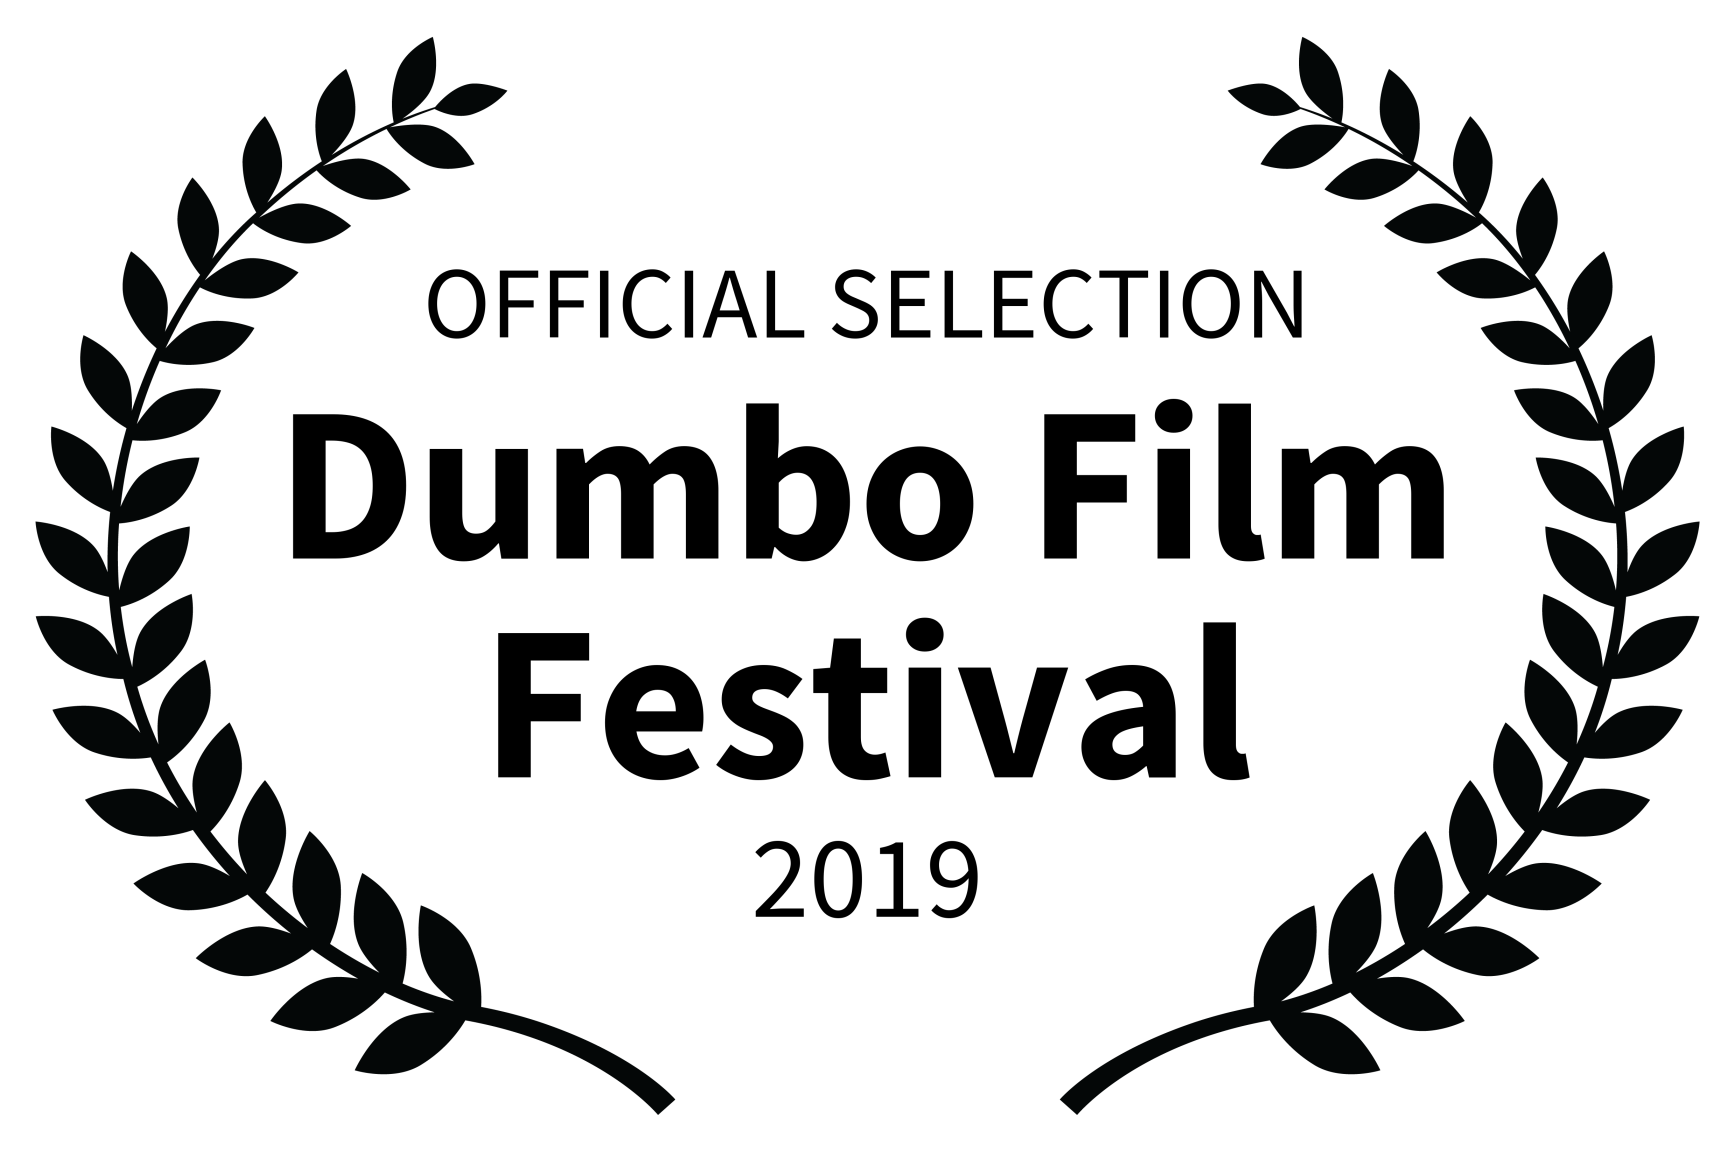 OFFICIAL SELECTION - Dumbo Film Festival - 2019